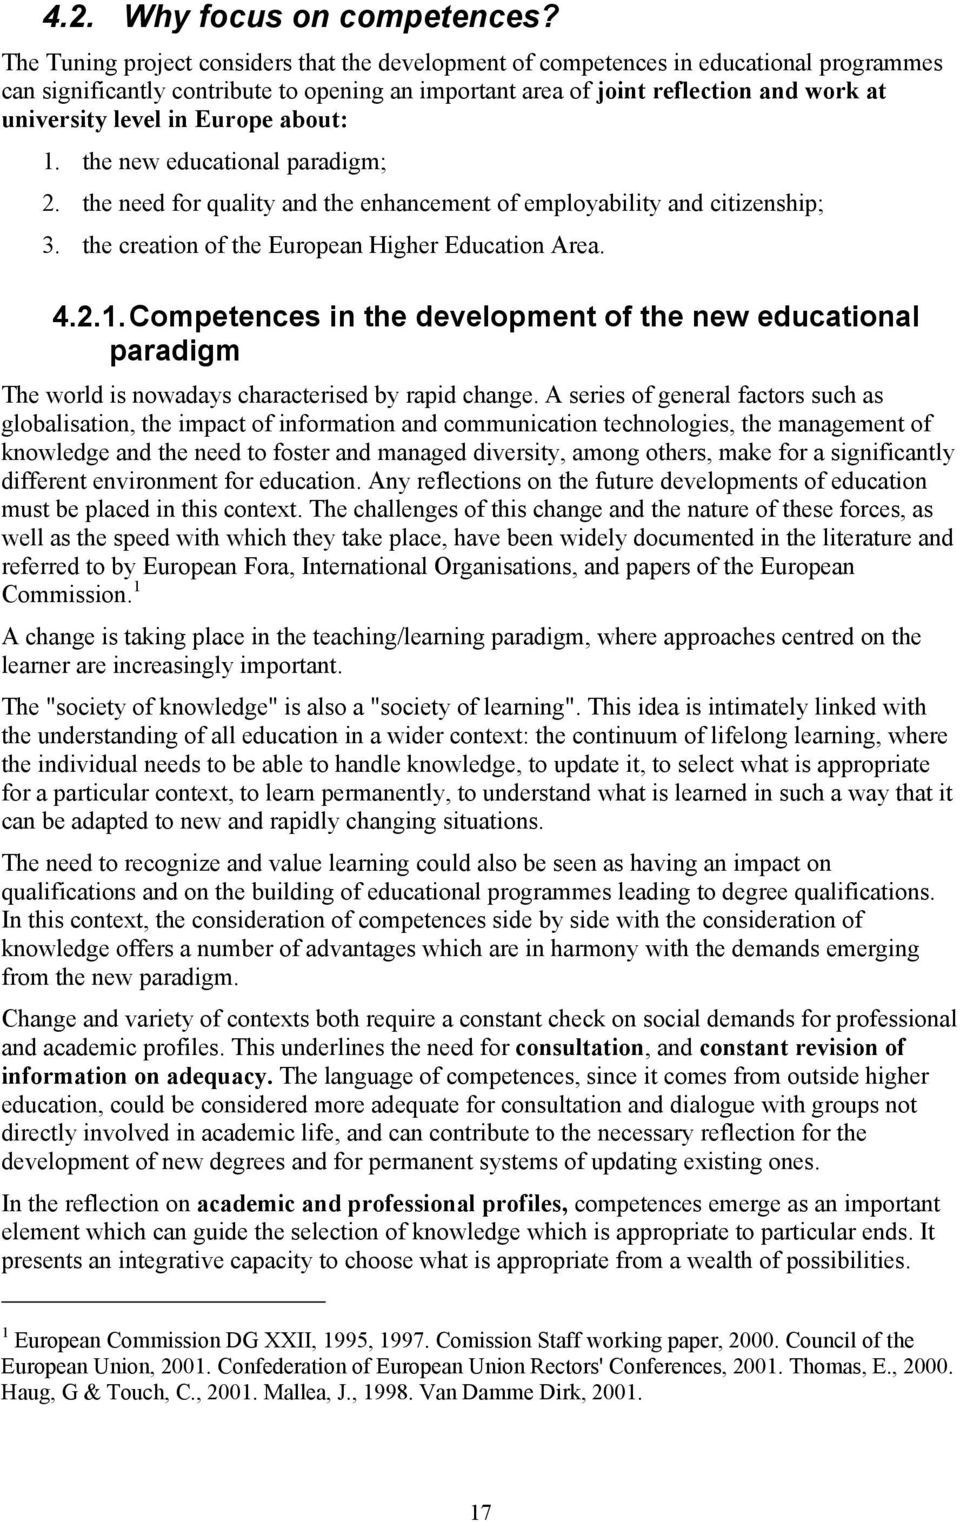 in Europe about: 1. the new educational paradigm; 2. the need for quality and the enhancement of employability and citizenship; 3. the creation of the European Higher Education Area. 4.2.1. Competences in the development of the new educational paradigm The world is nowadays characterised by rapid change.